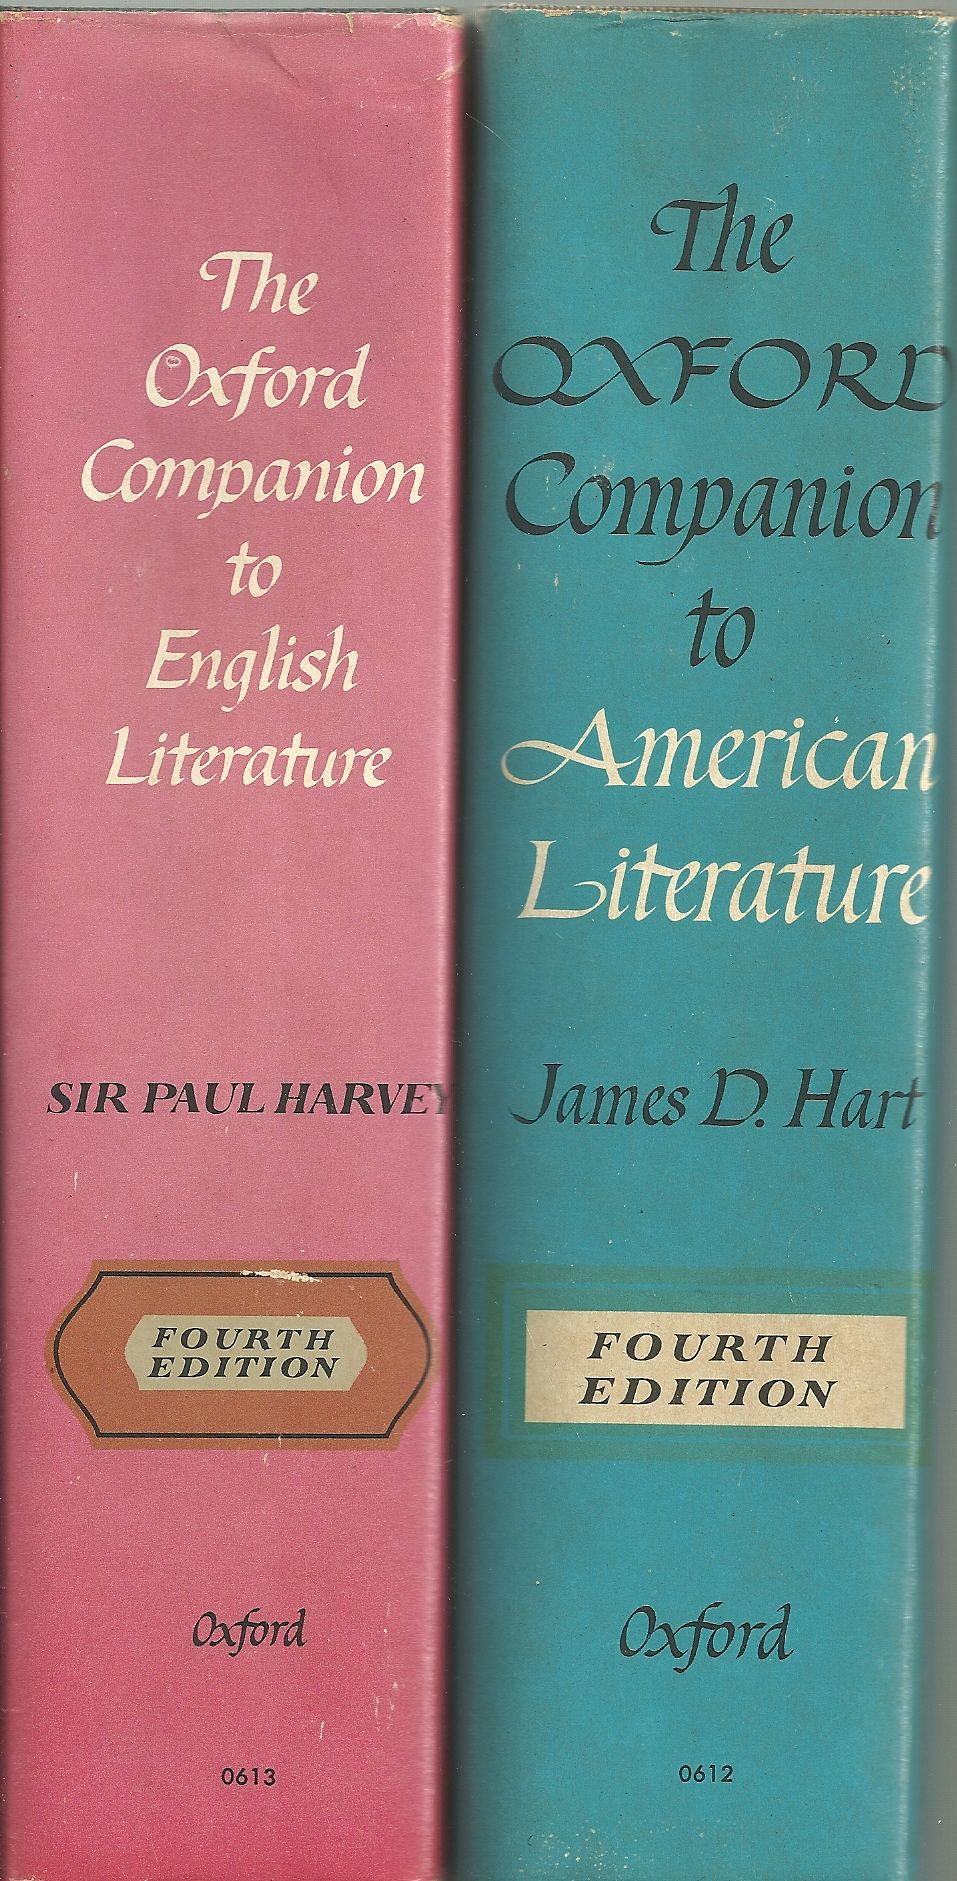 THE OXFORD COMPANION TO AMERICAN LITERATURE/THE OXFORD COMPANION TO ENGLISH LITERATURE (2 VOLS)